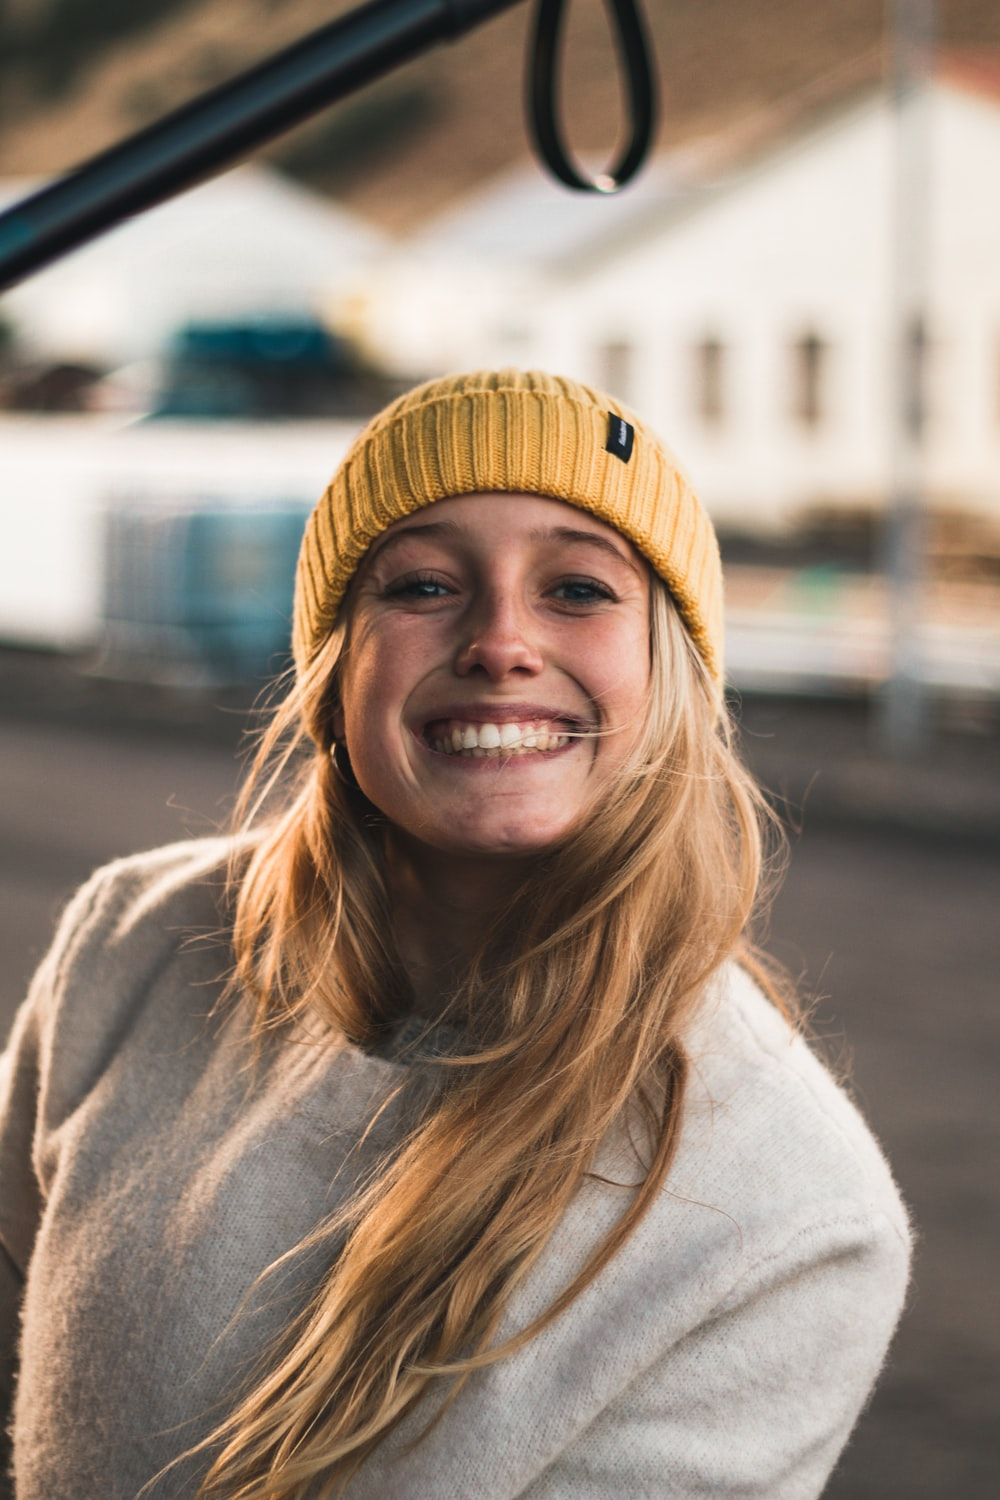 smiling woman in brown knit cap and gray sweater